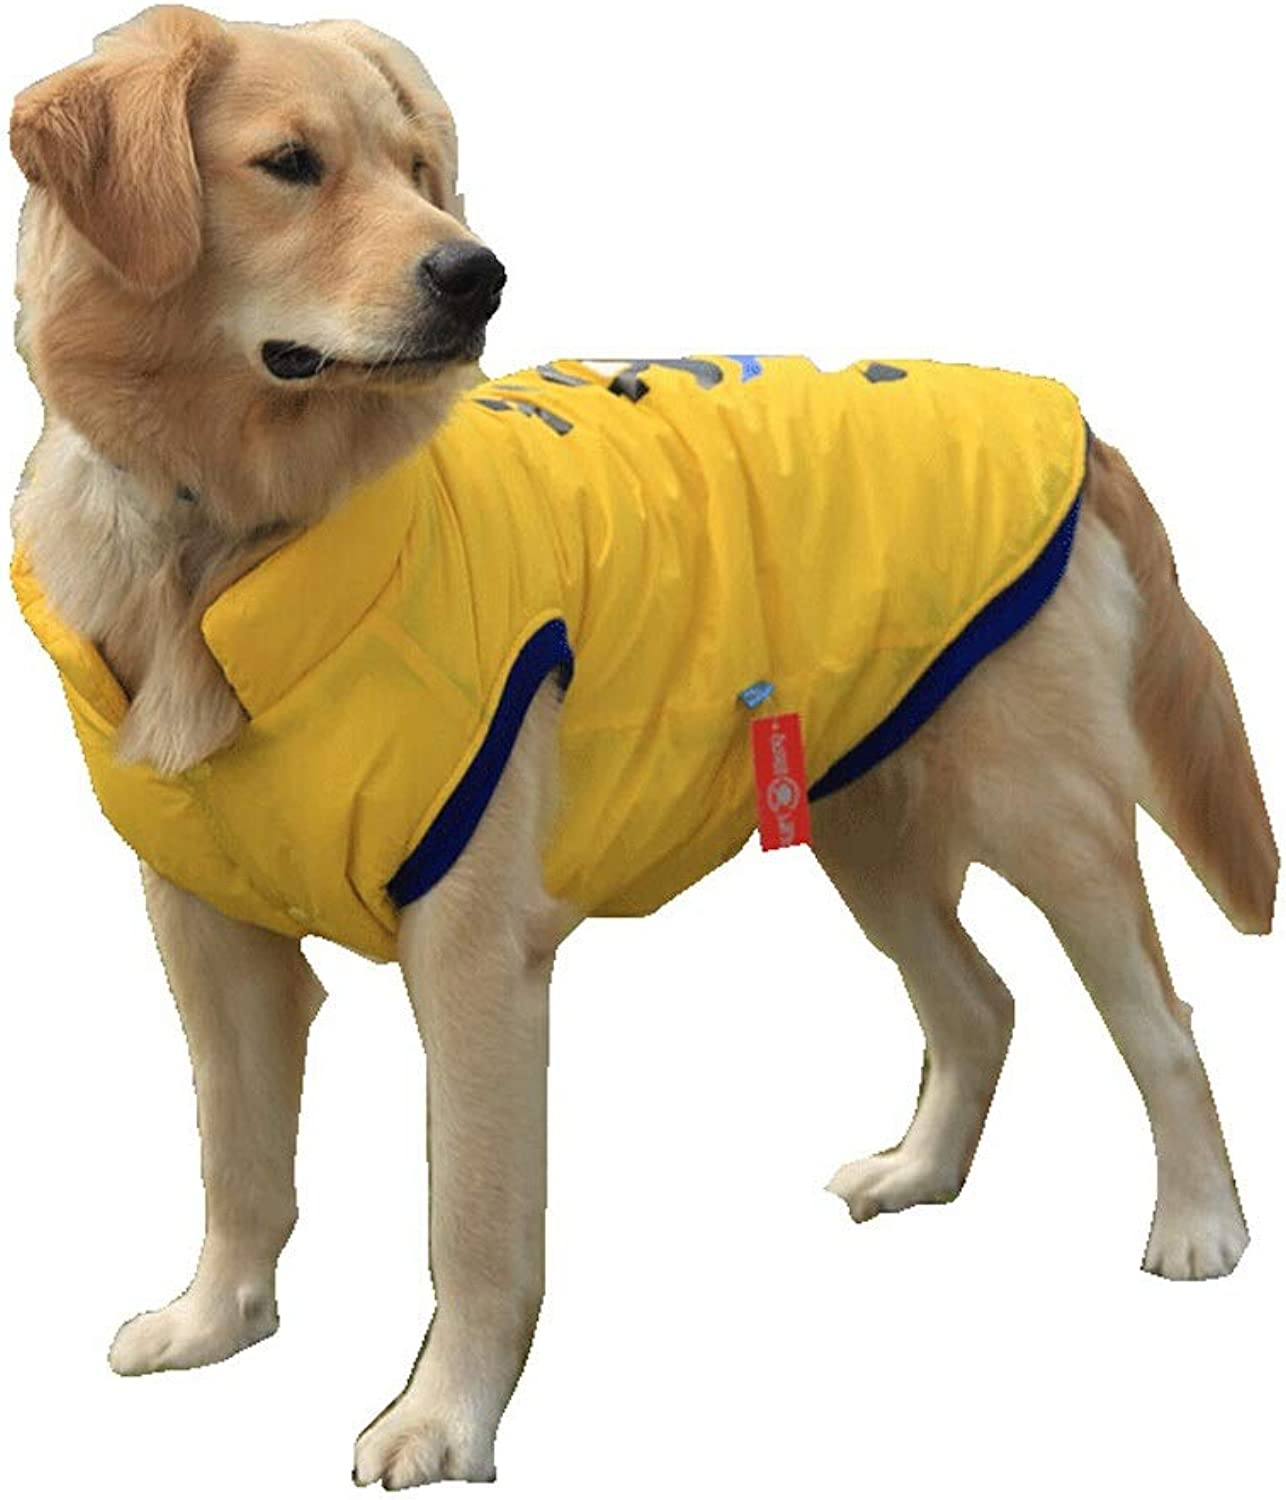 Pet Clothes  Dog Autumn and Winter Coat Thickening Large Dog Clothes (color   Yellow, Size   XXXL)